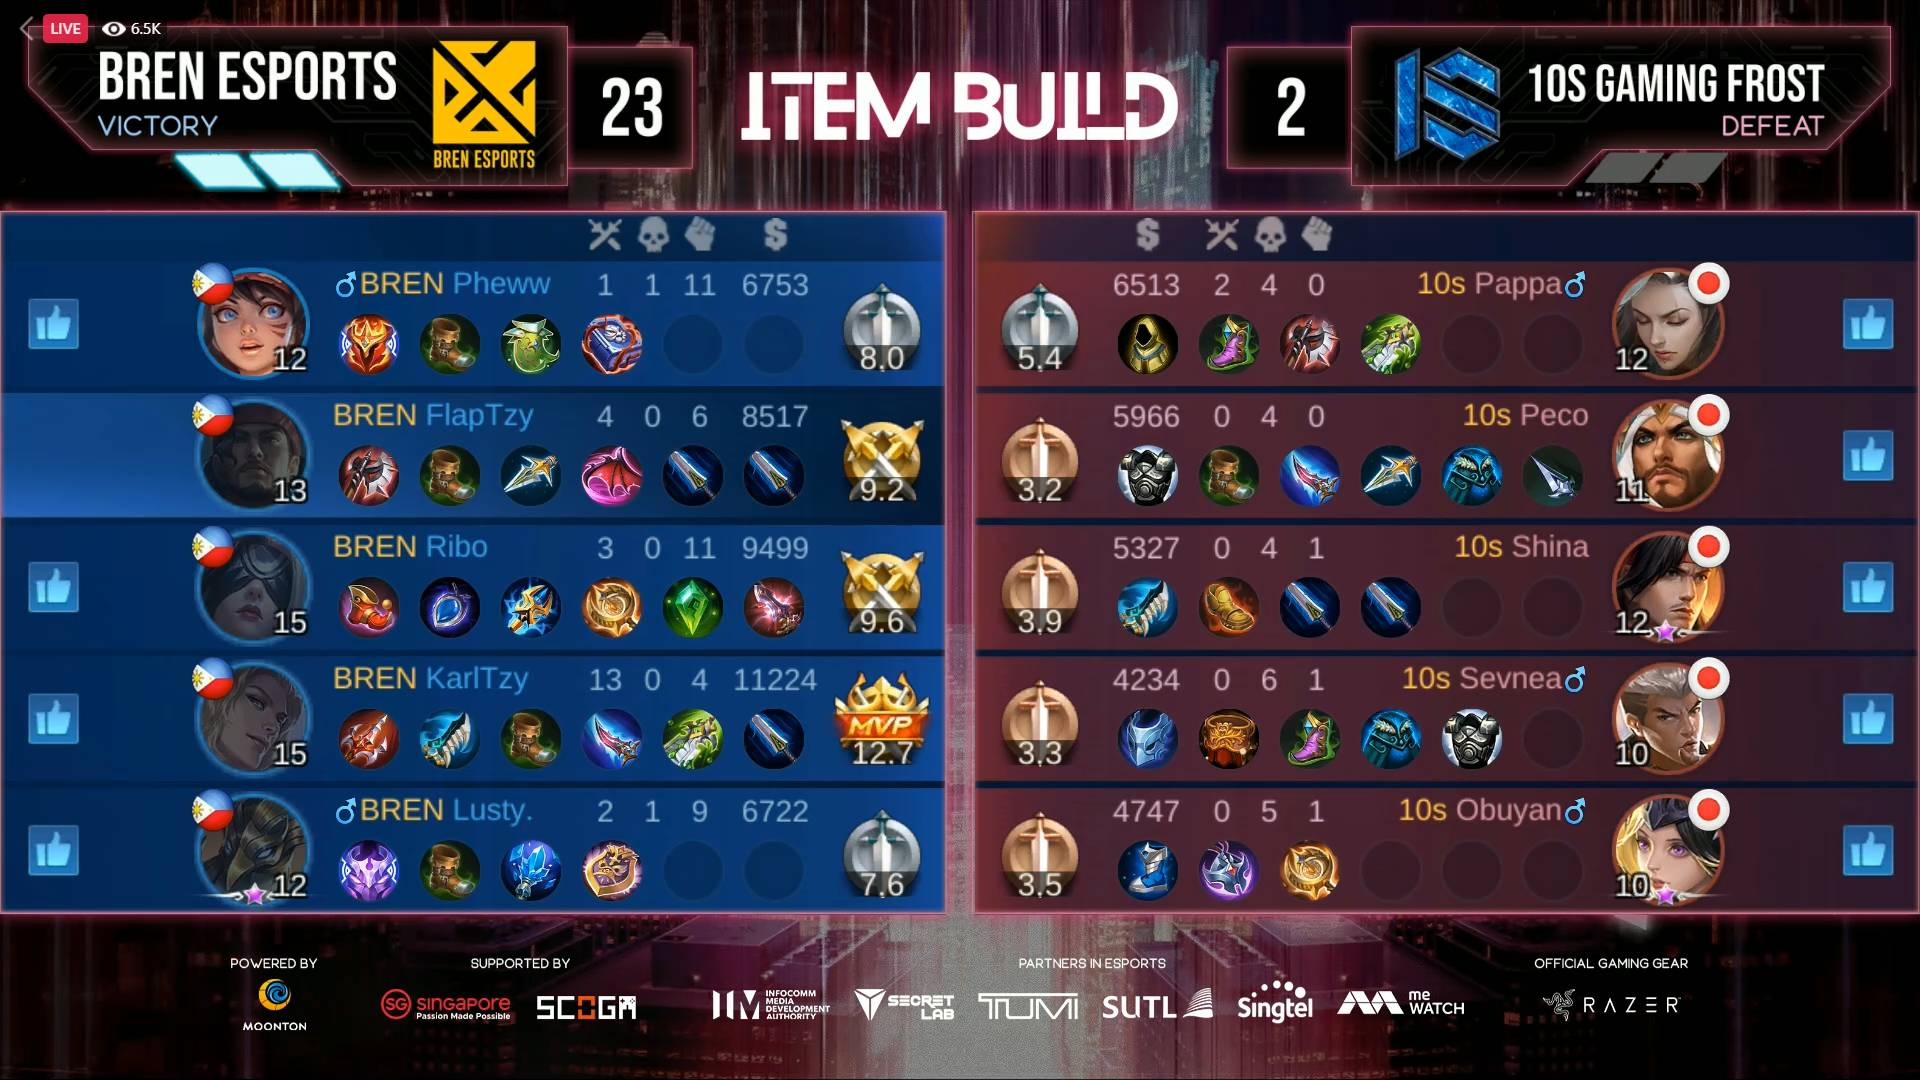 2021-M2-World-Championship-BREN-def-1os-Game-Two KarlTzy's savage highlights BREN Esports sweep of 10S in M2 ESports Mobile Legends MPL-PH News  - philippine sports news